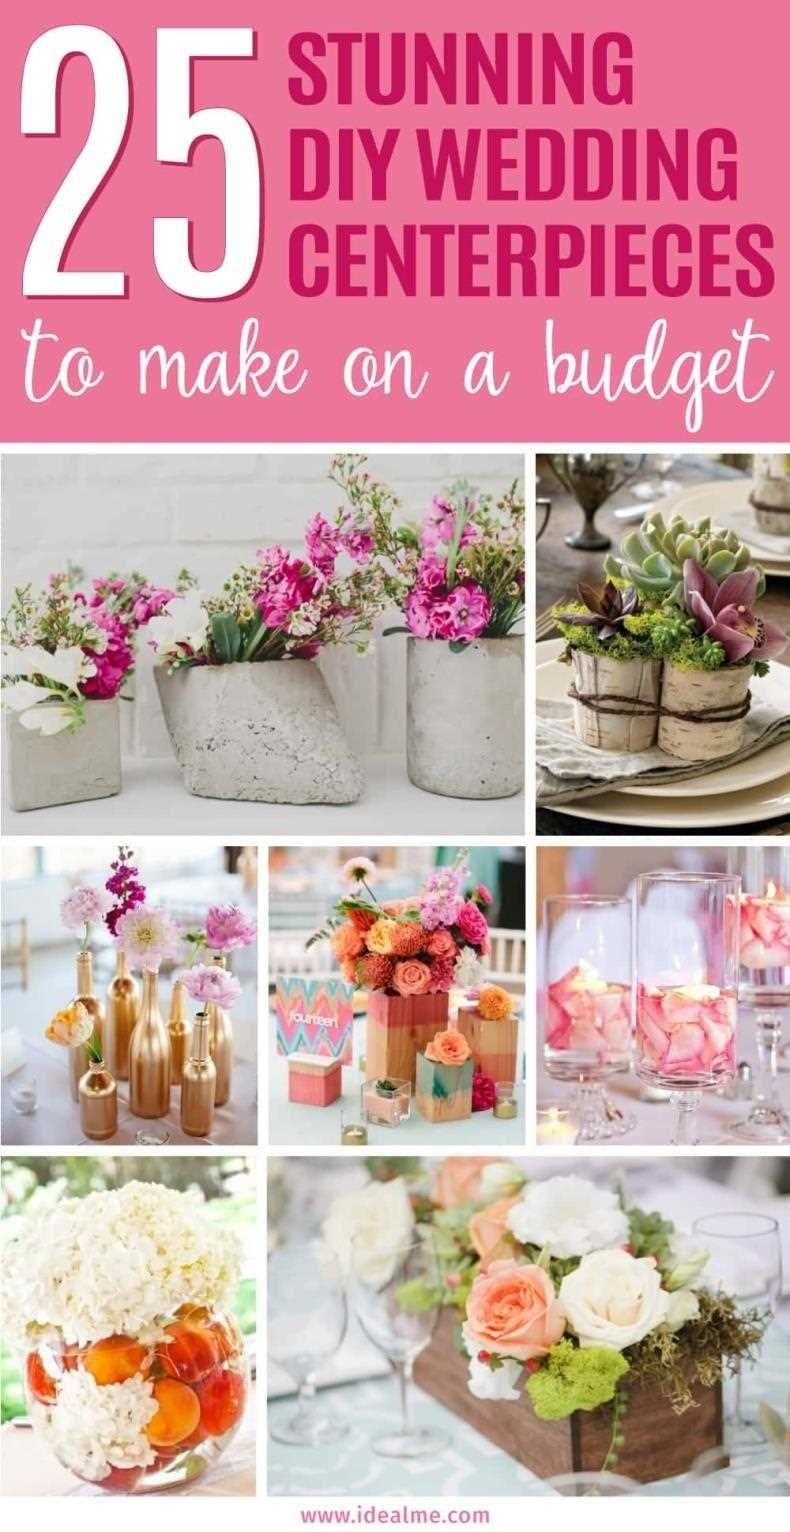 10 Nice Wedding Ideas For Spring On A Budget